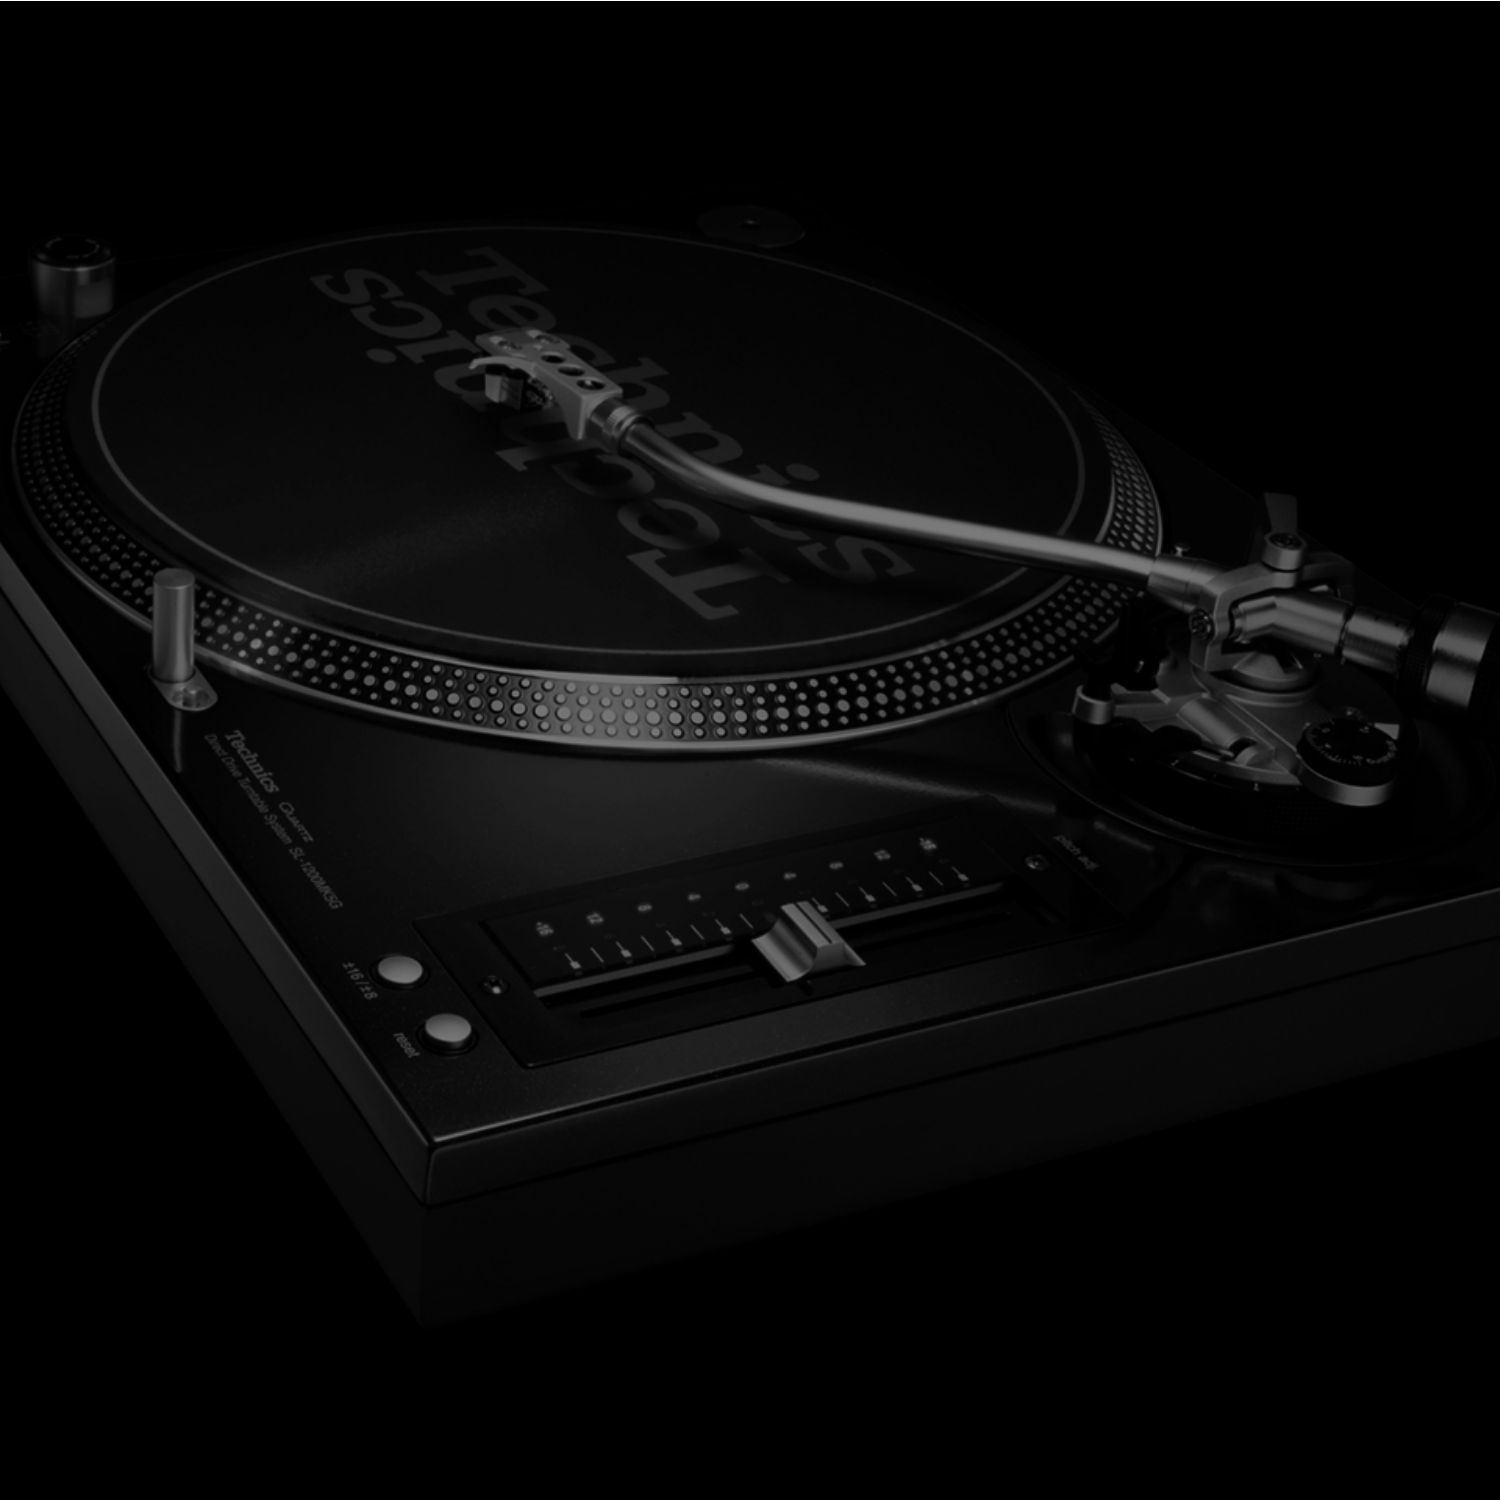 technics panasonic sl 1200 parkett